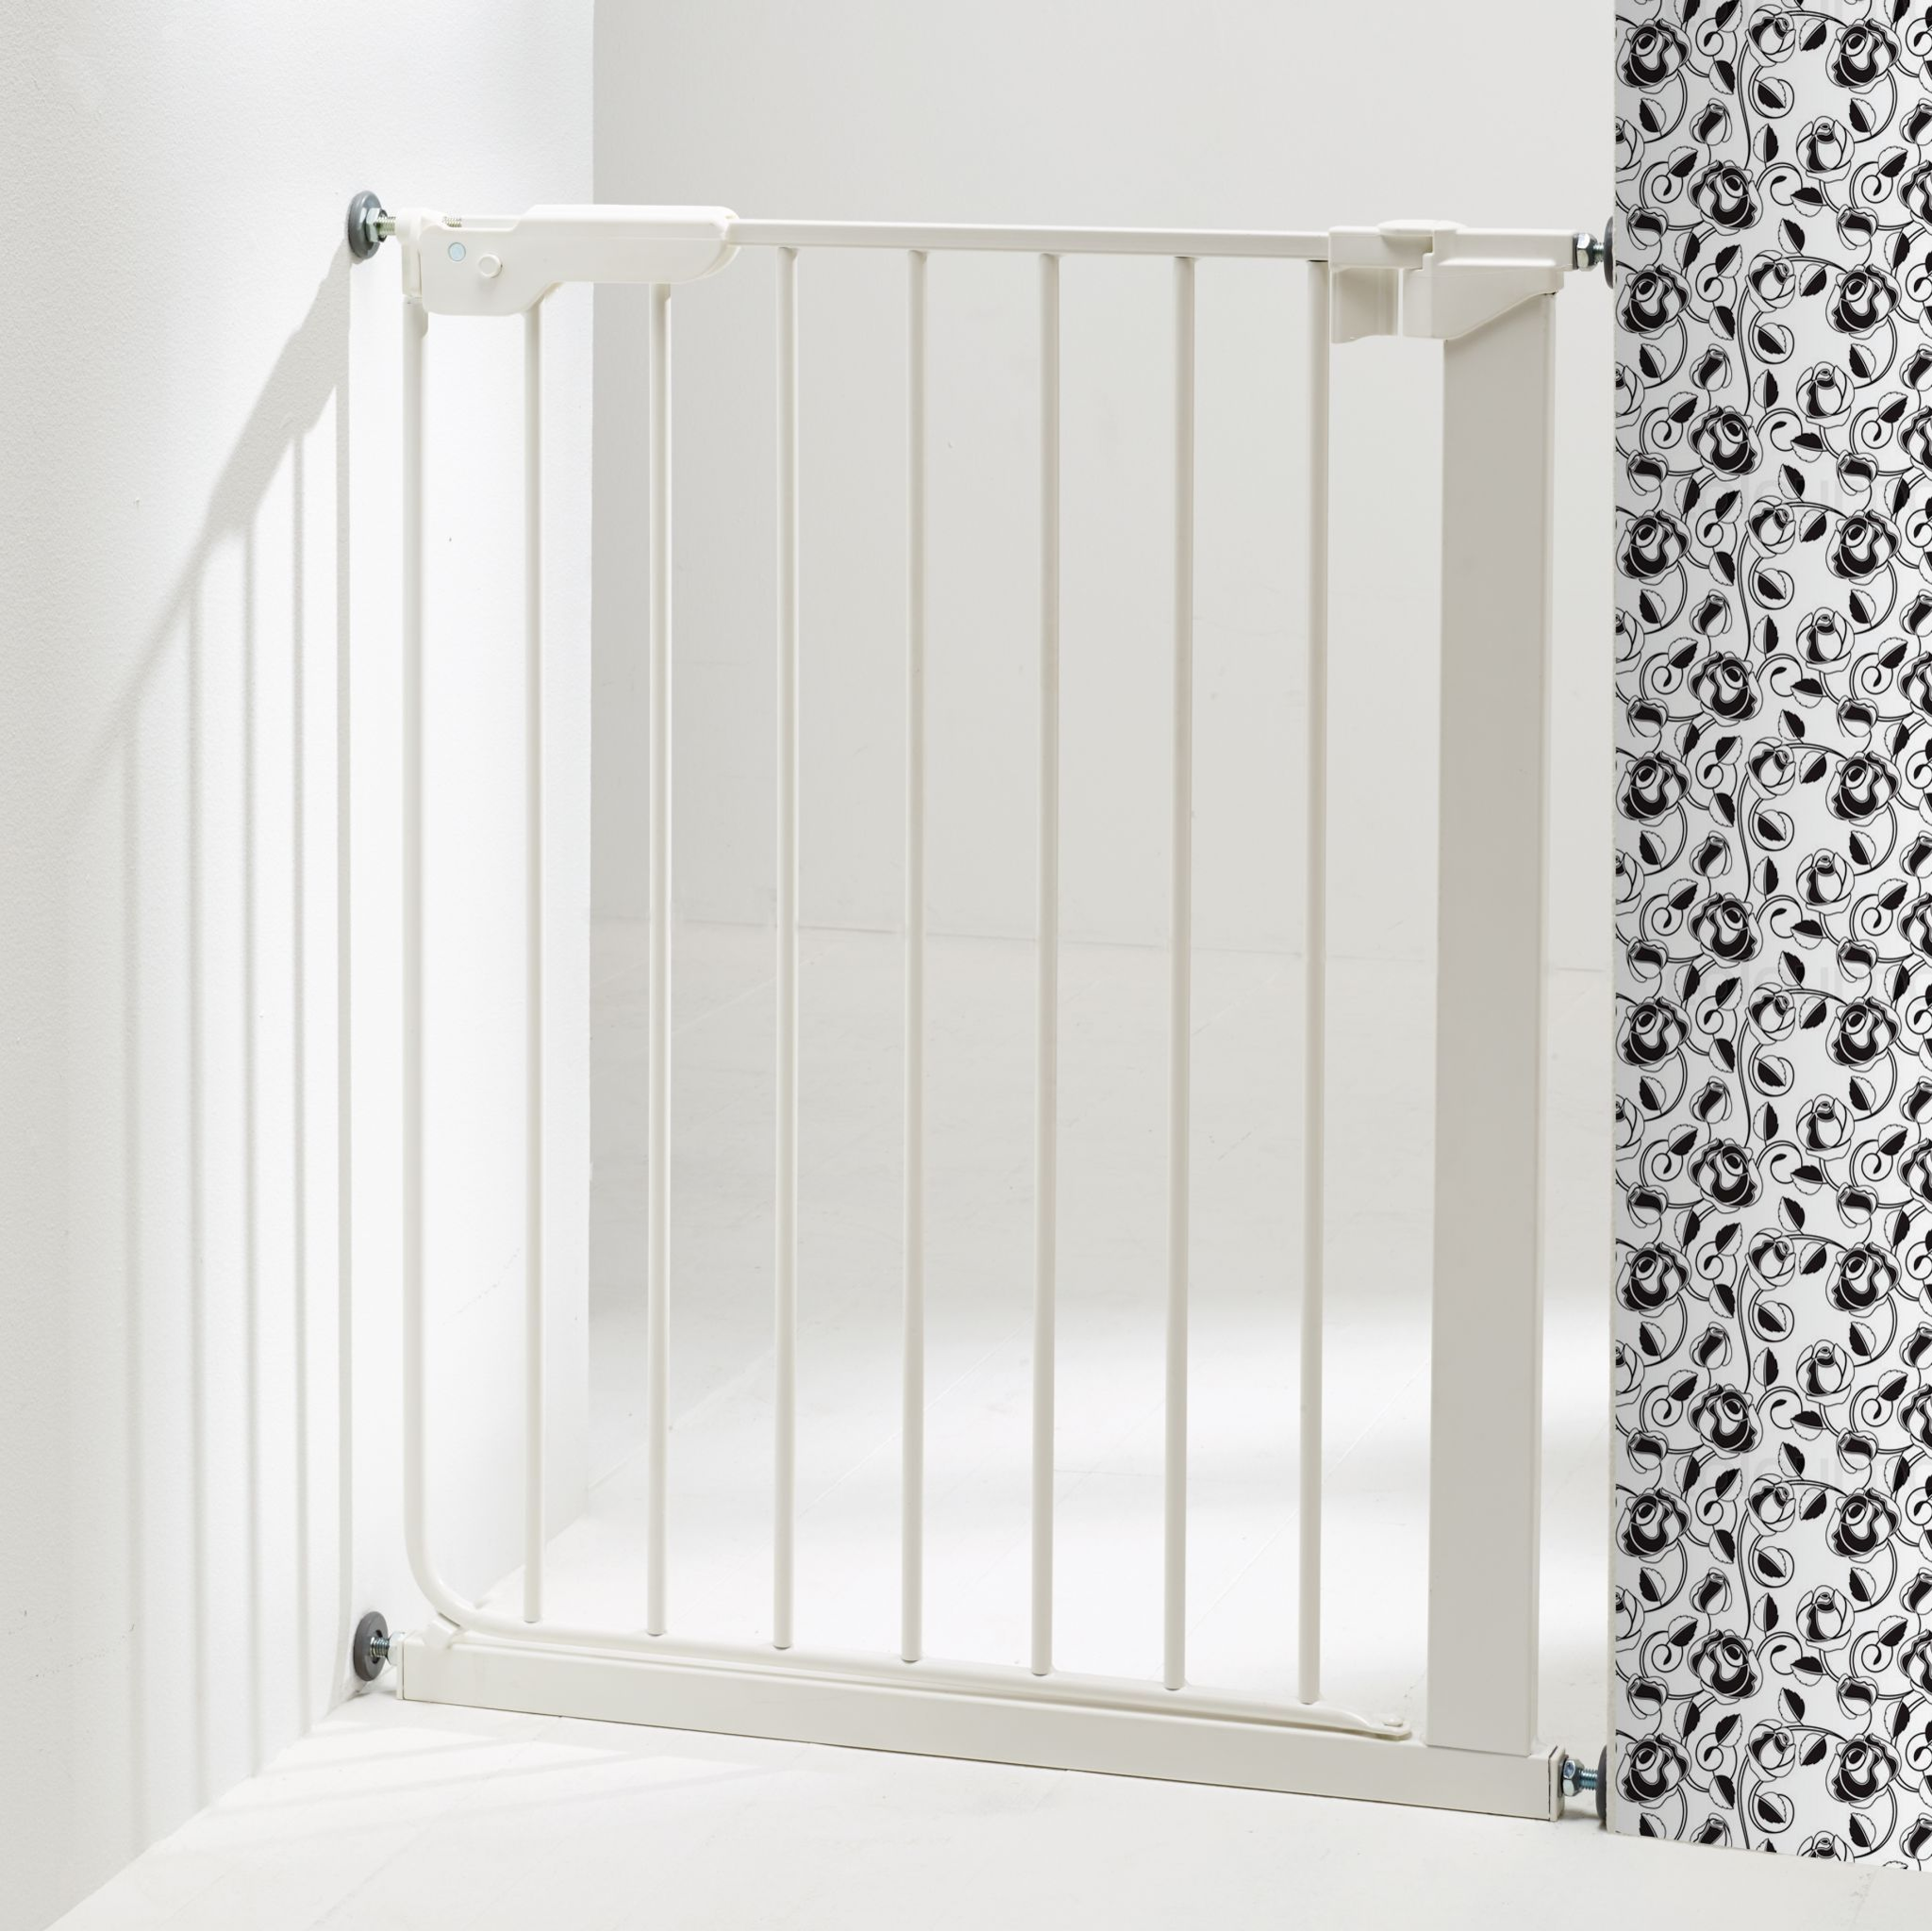 Baby Dan - SlimFit Gate with 1 extensions, white